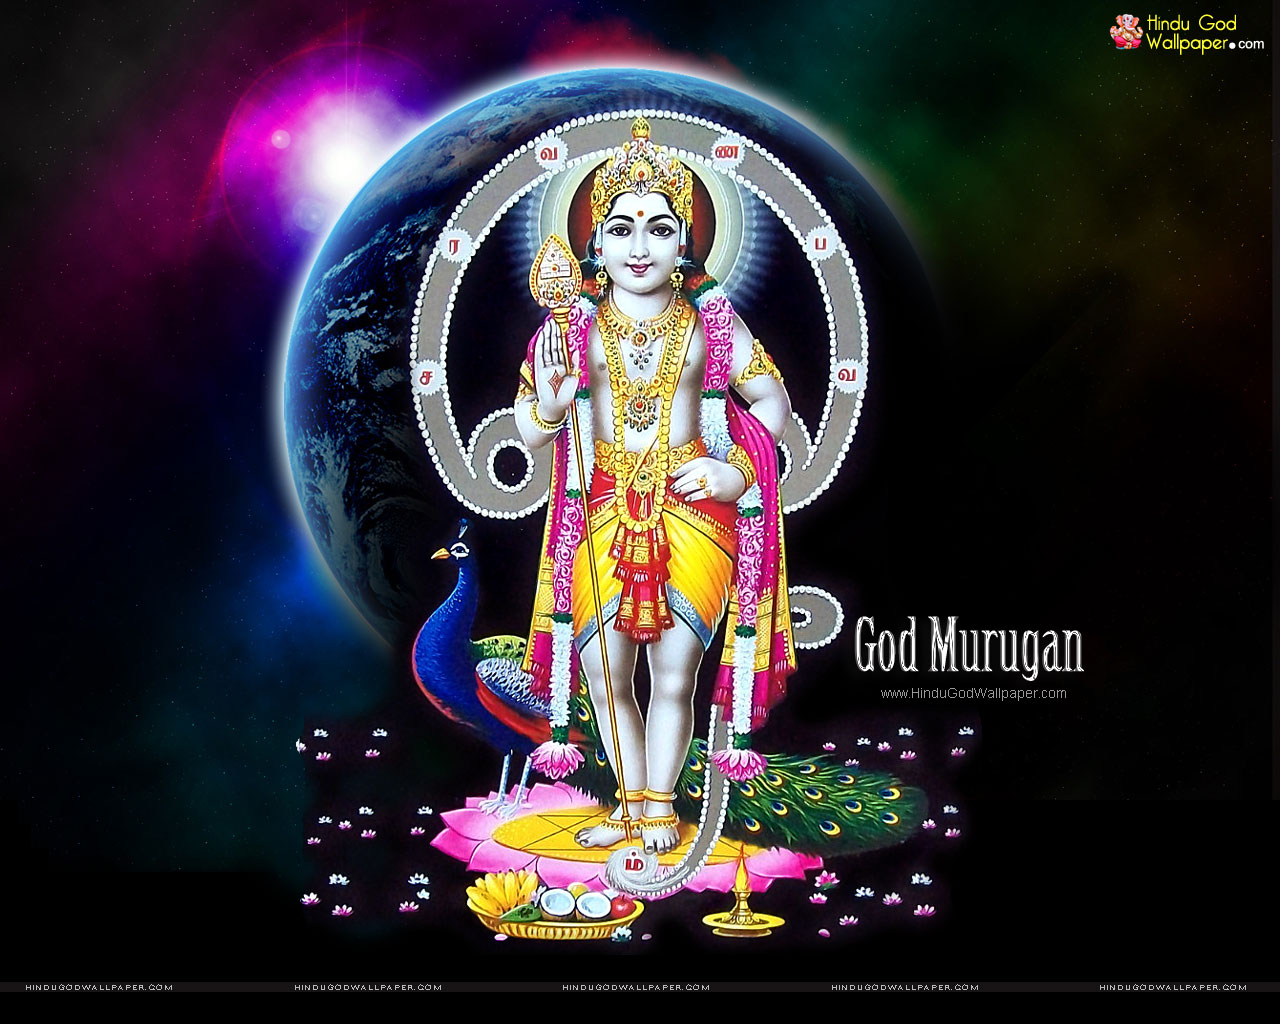 God muruga hd image download